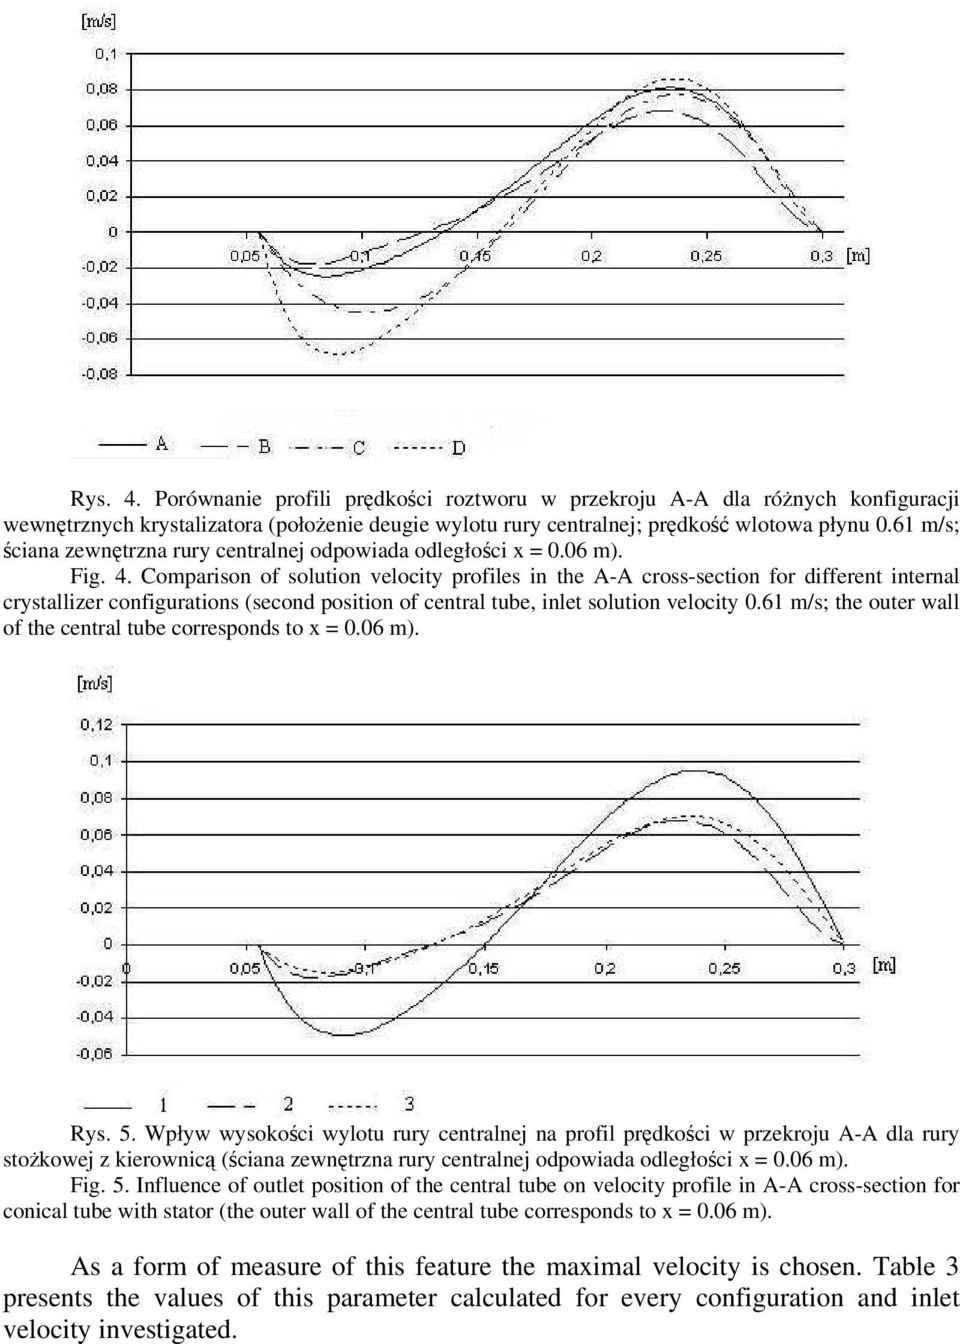 Comparison of solution velocity profiles in the A-A cross-section for different internal crystallizer configurations (second position of central tube, inlet solution velocity 0.